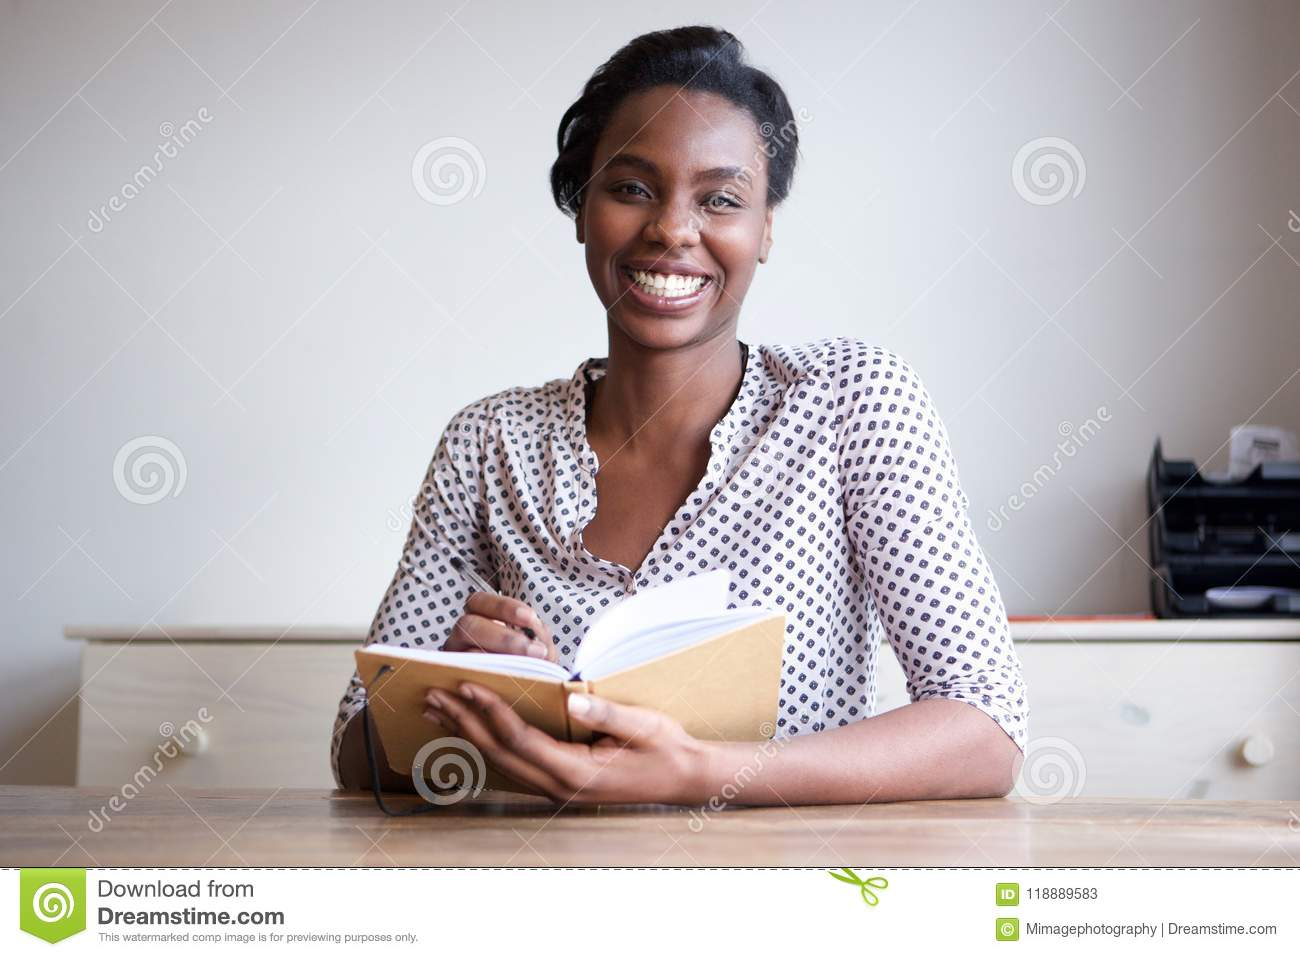 smiling black woman at home writing in journal stock image - image